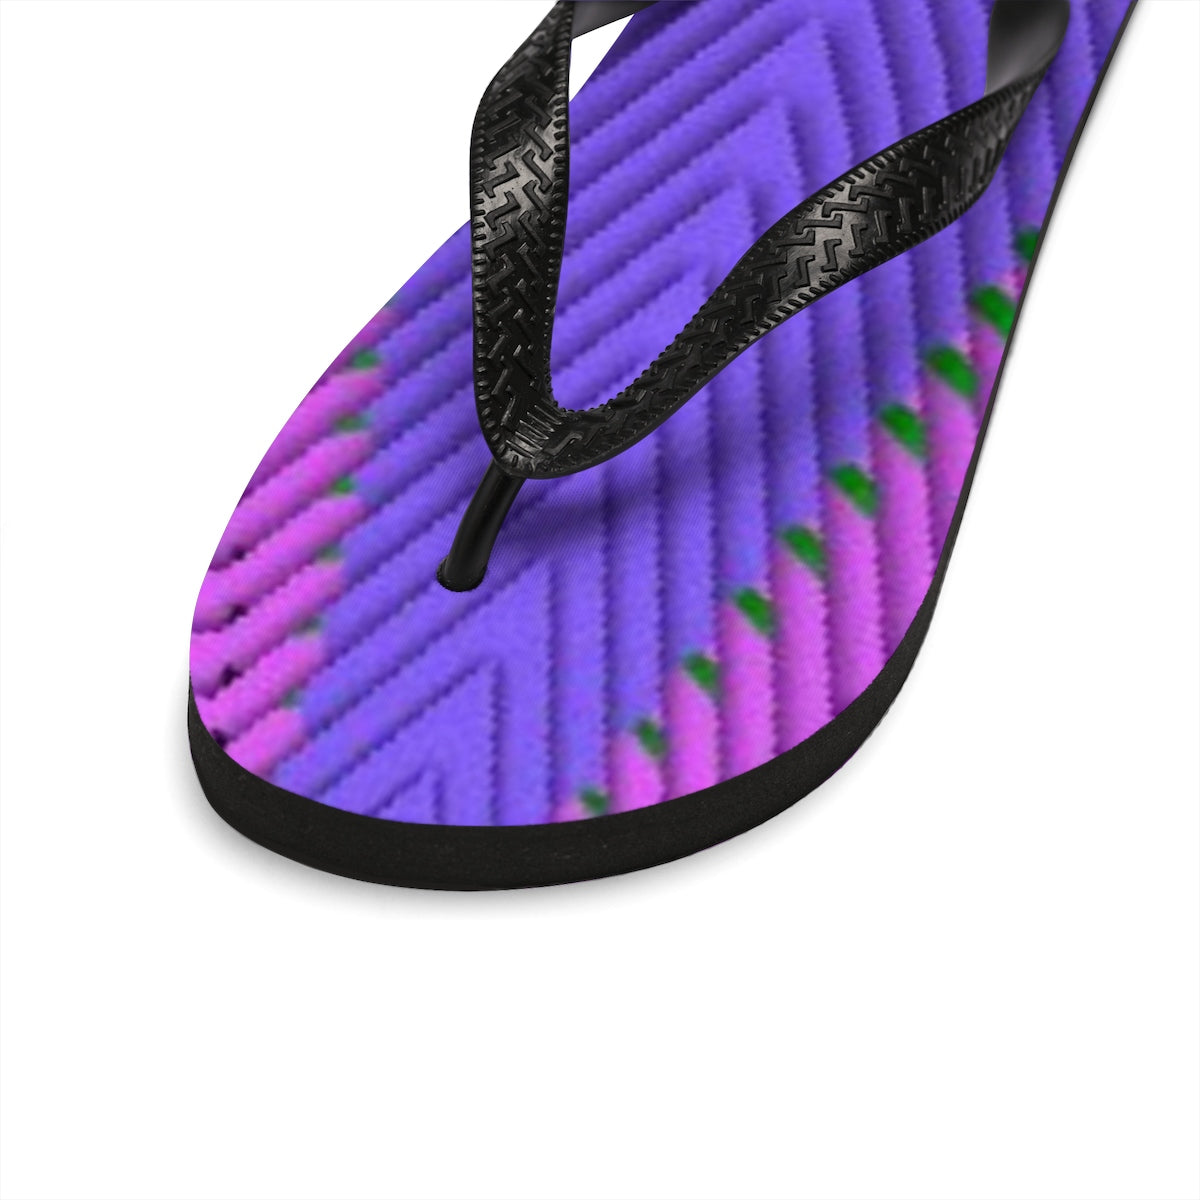 Indigo G Attraction Escalator Unisex Flip-Flops - the-Indigo-G-experiece - Indigo G